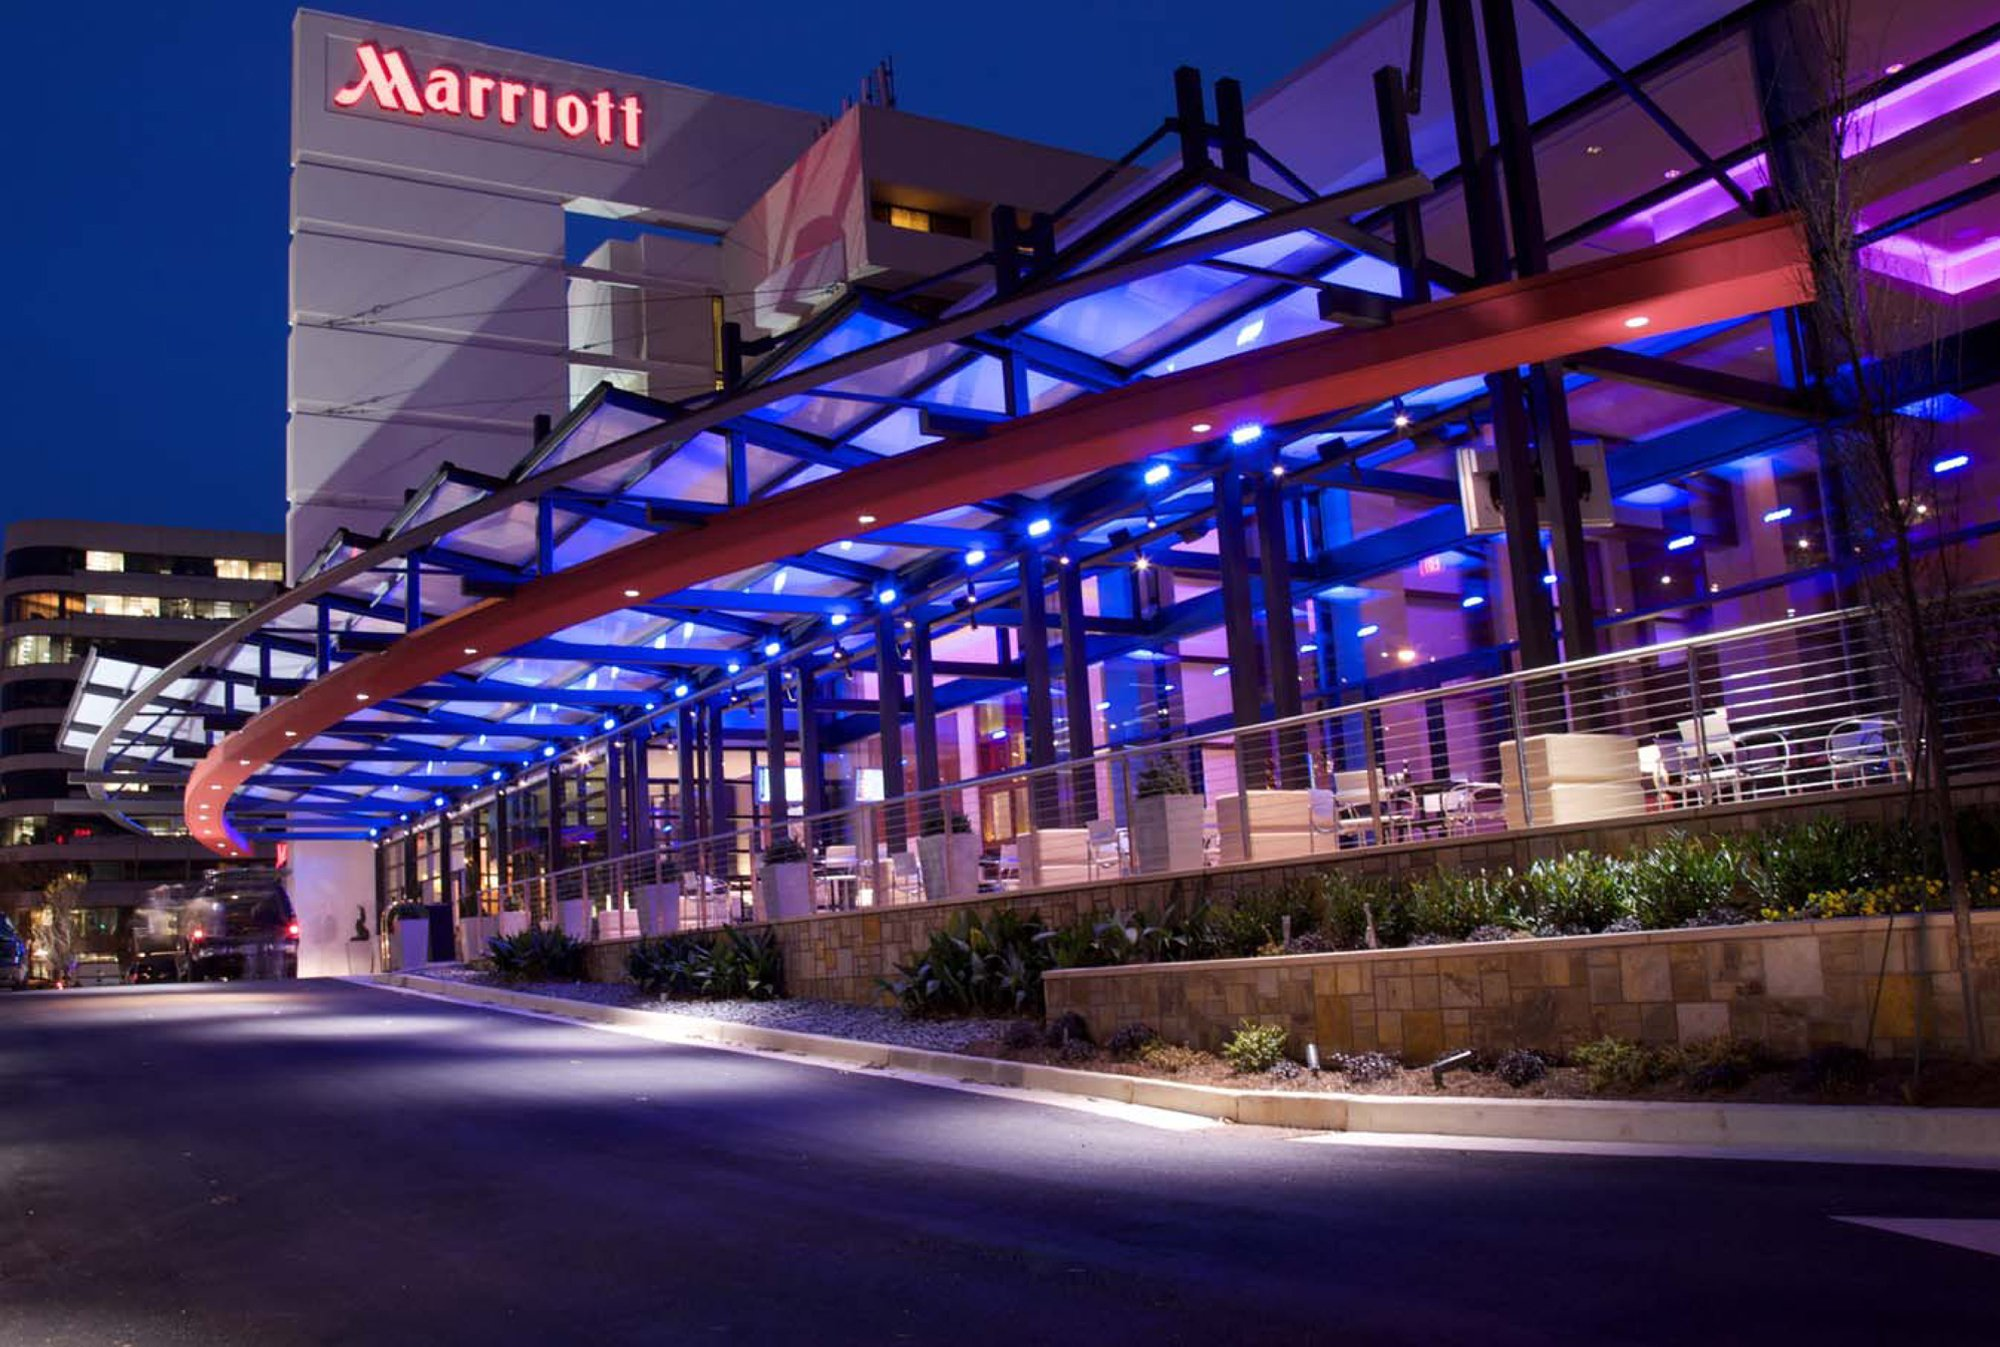 Marriott S 3 Year Plan Includes 300 000 New Rooms Hotel